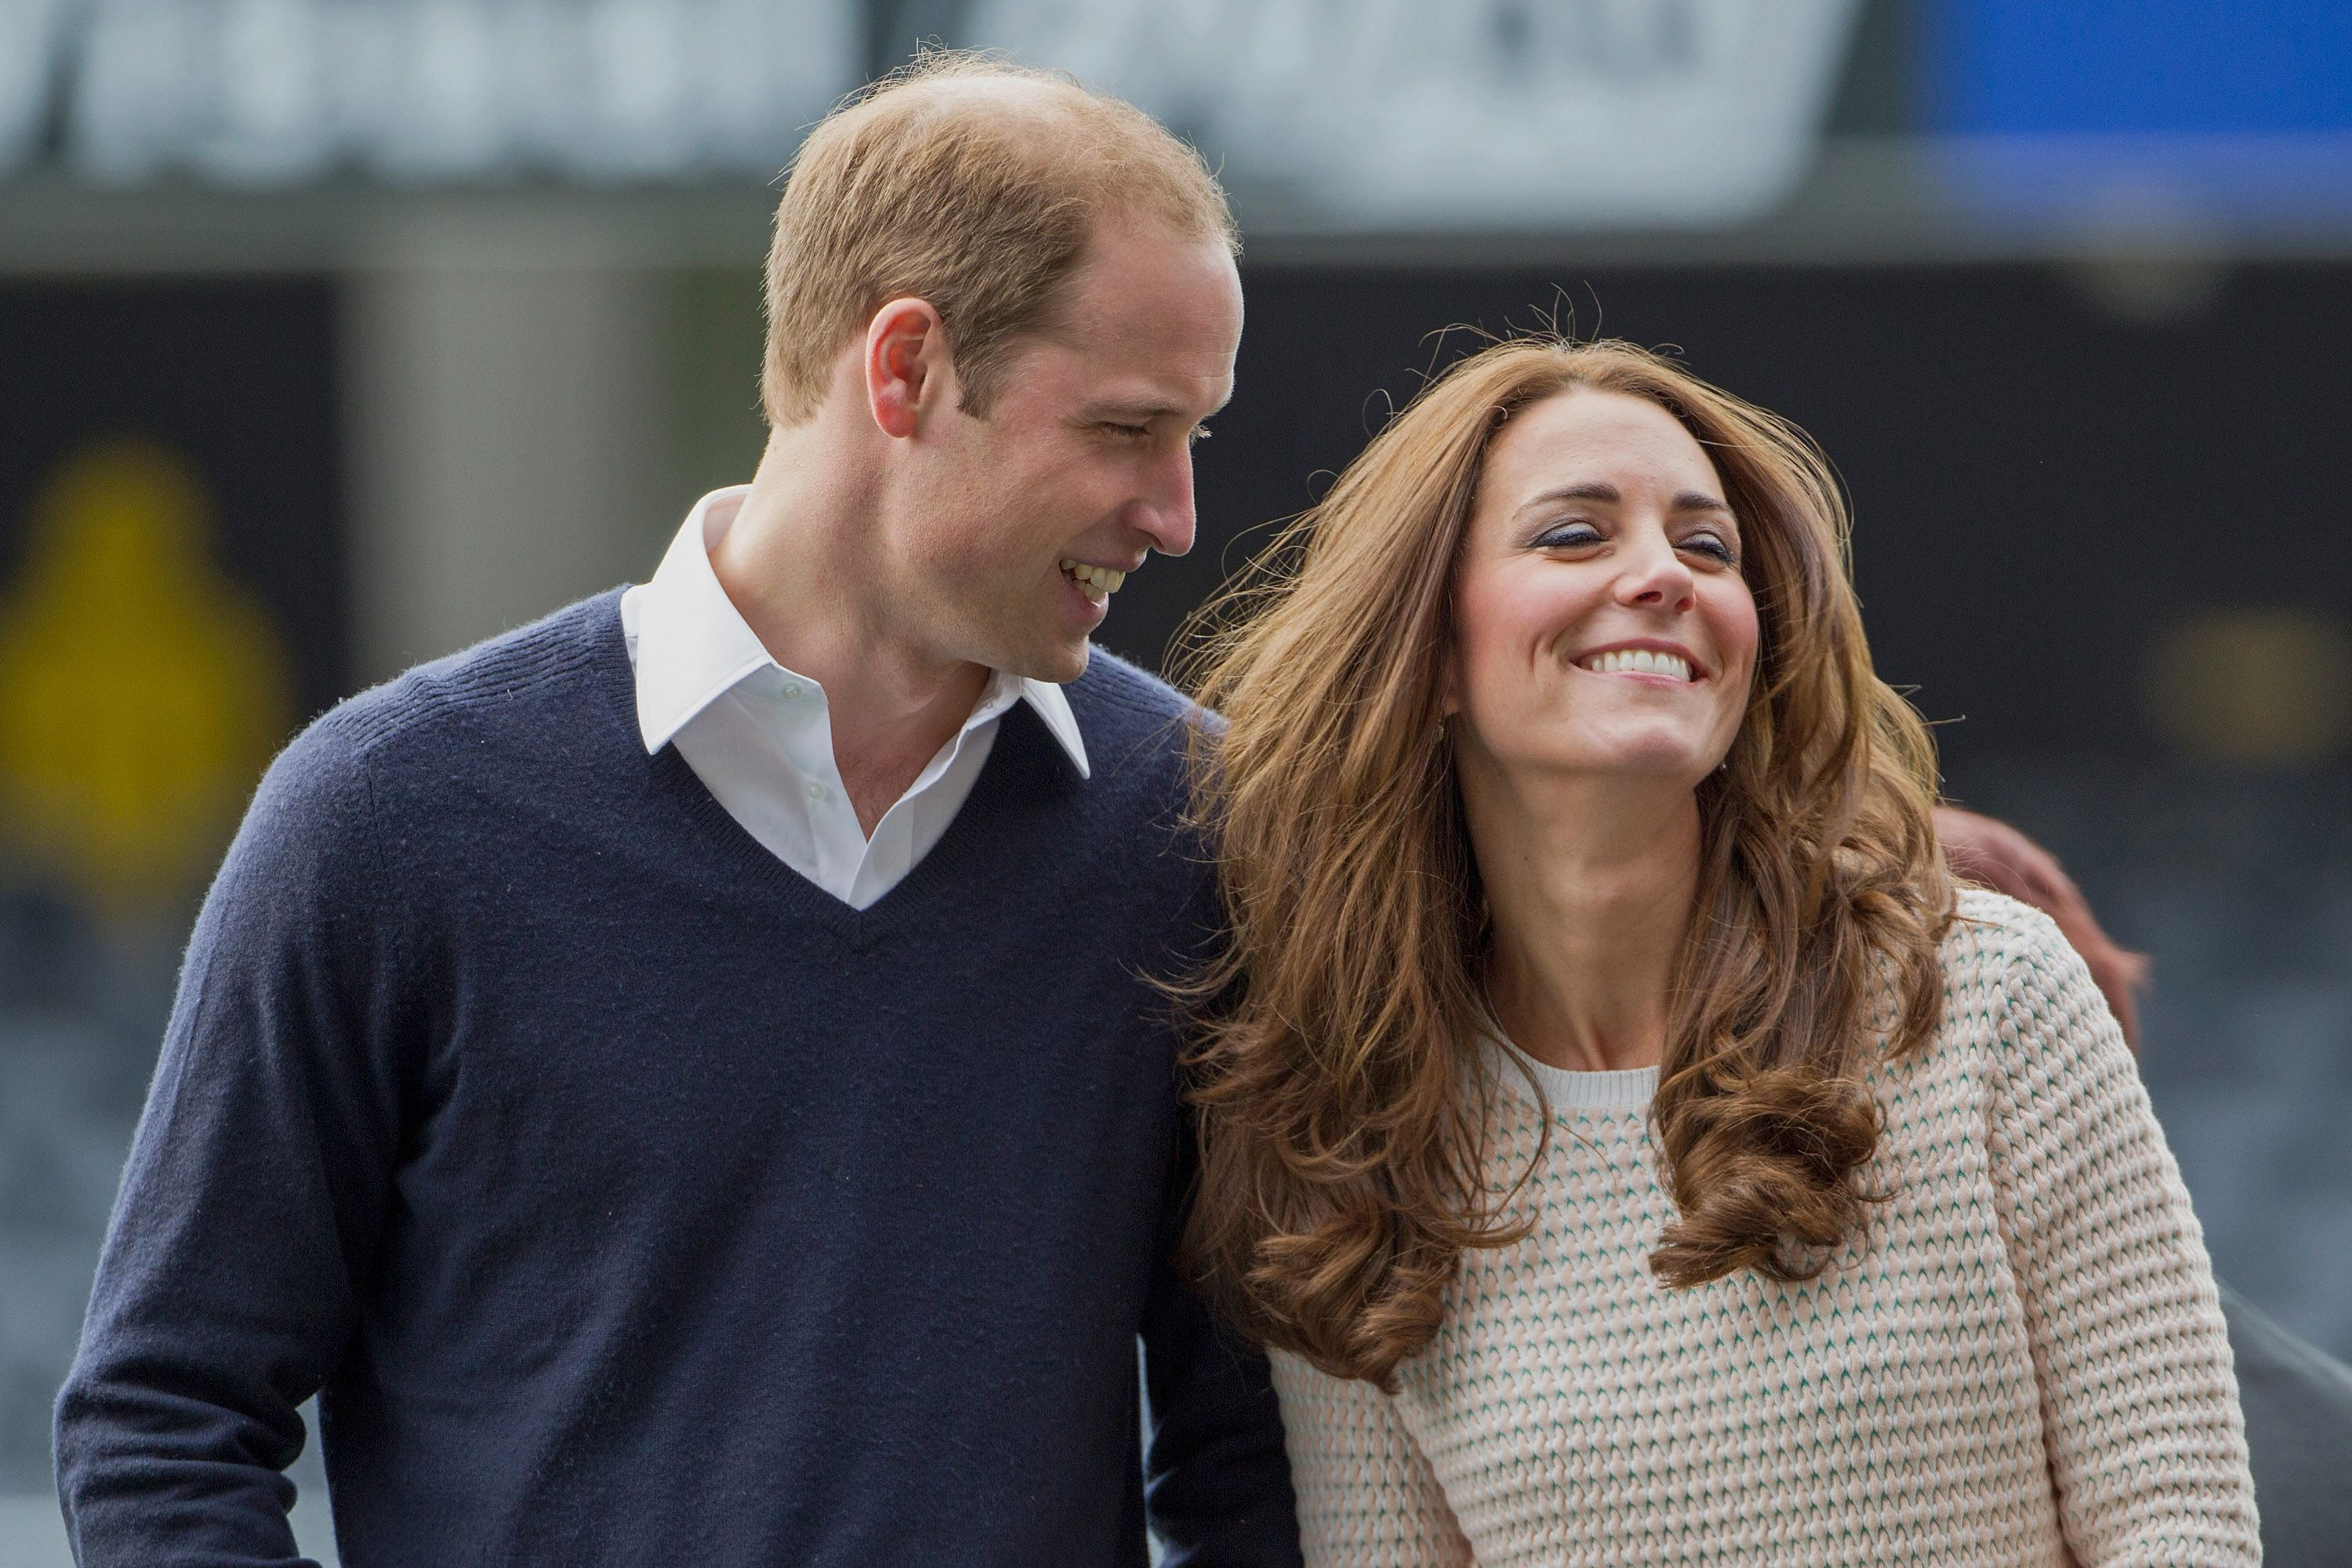 Kate Middleton and Prince William Were Caught on a Secret Date Amid Affair Rumors and There Are Pics